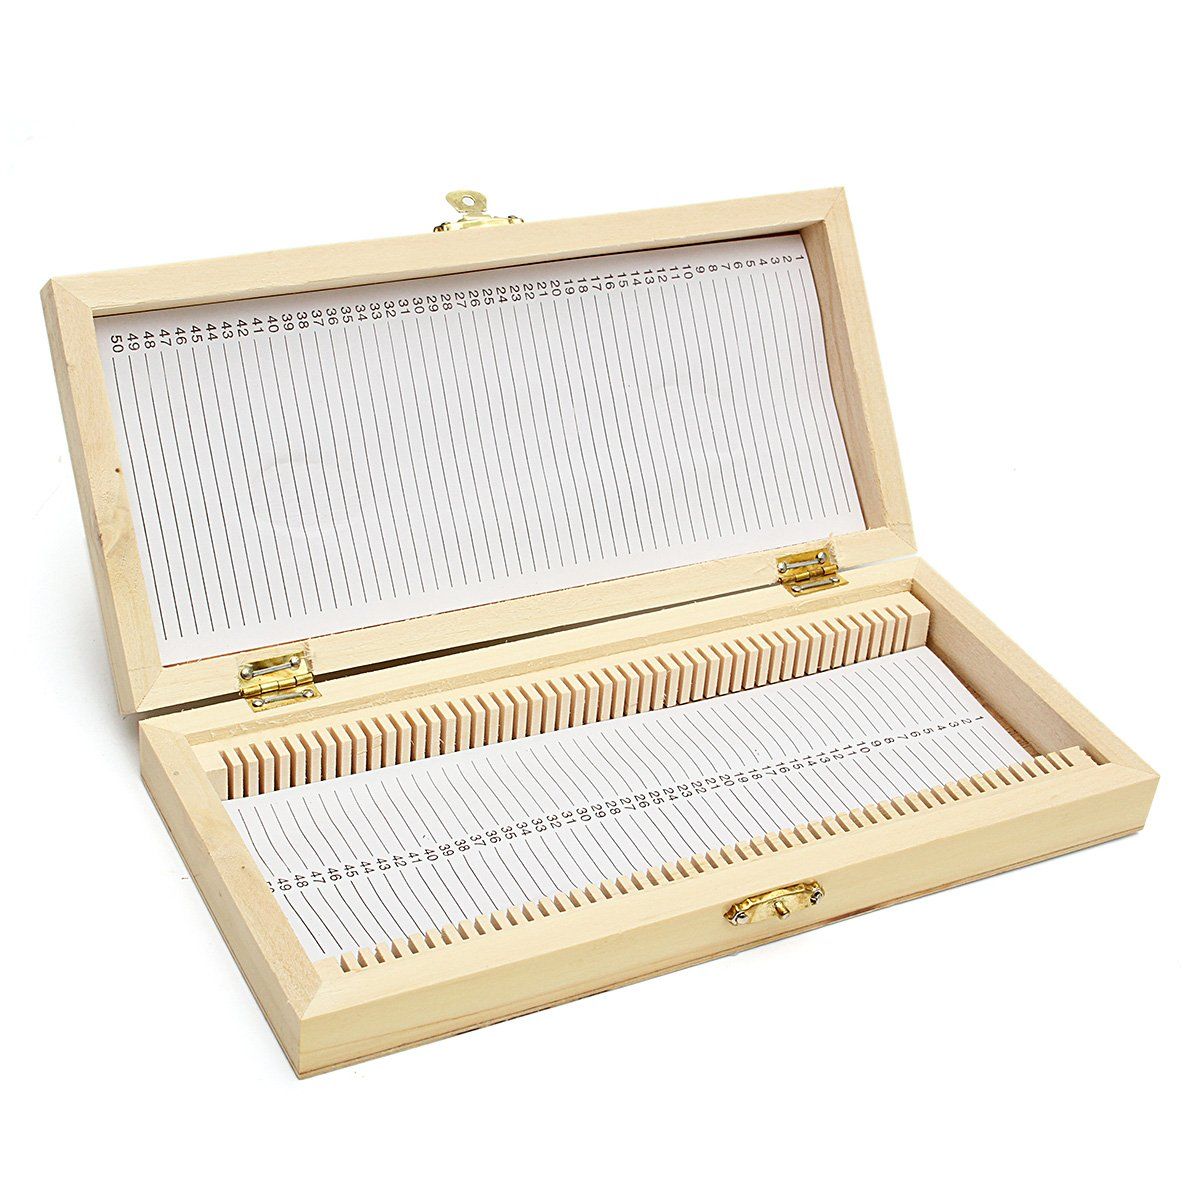 Tutoy Wooden Microscope Slide Box Case Cabinet Holder for 50pcs Slides Storage Kit